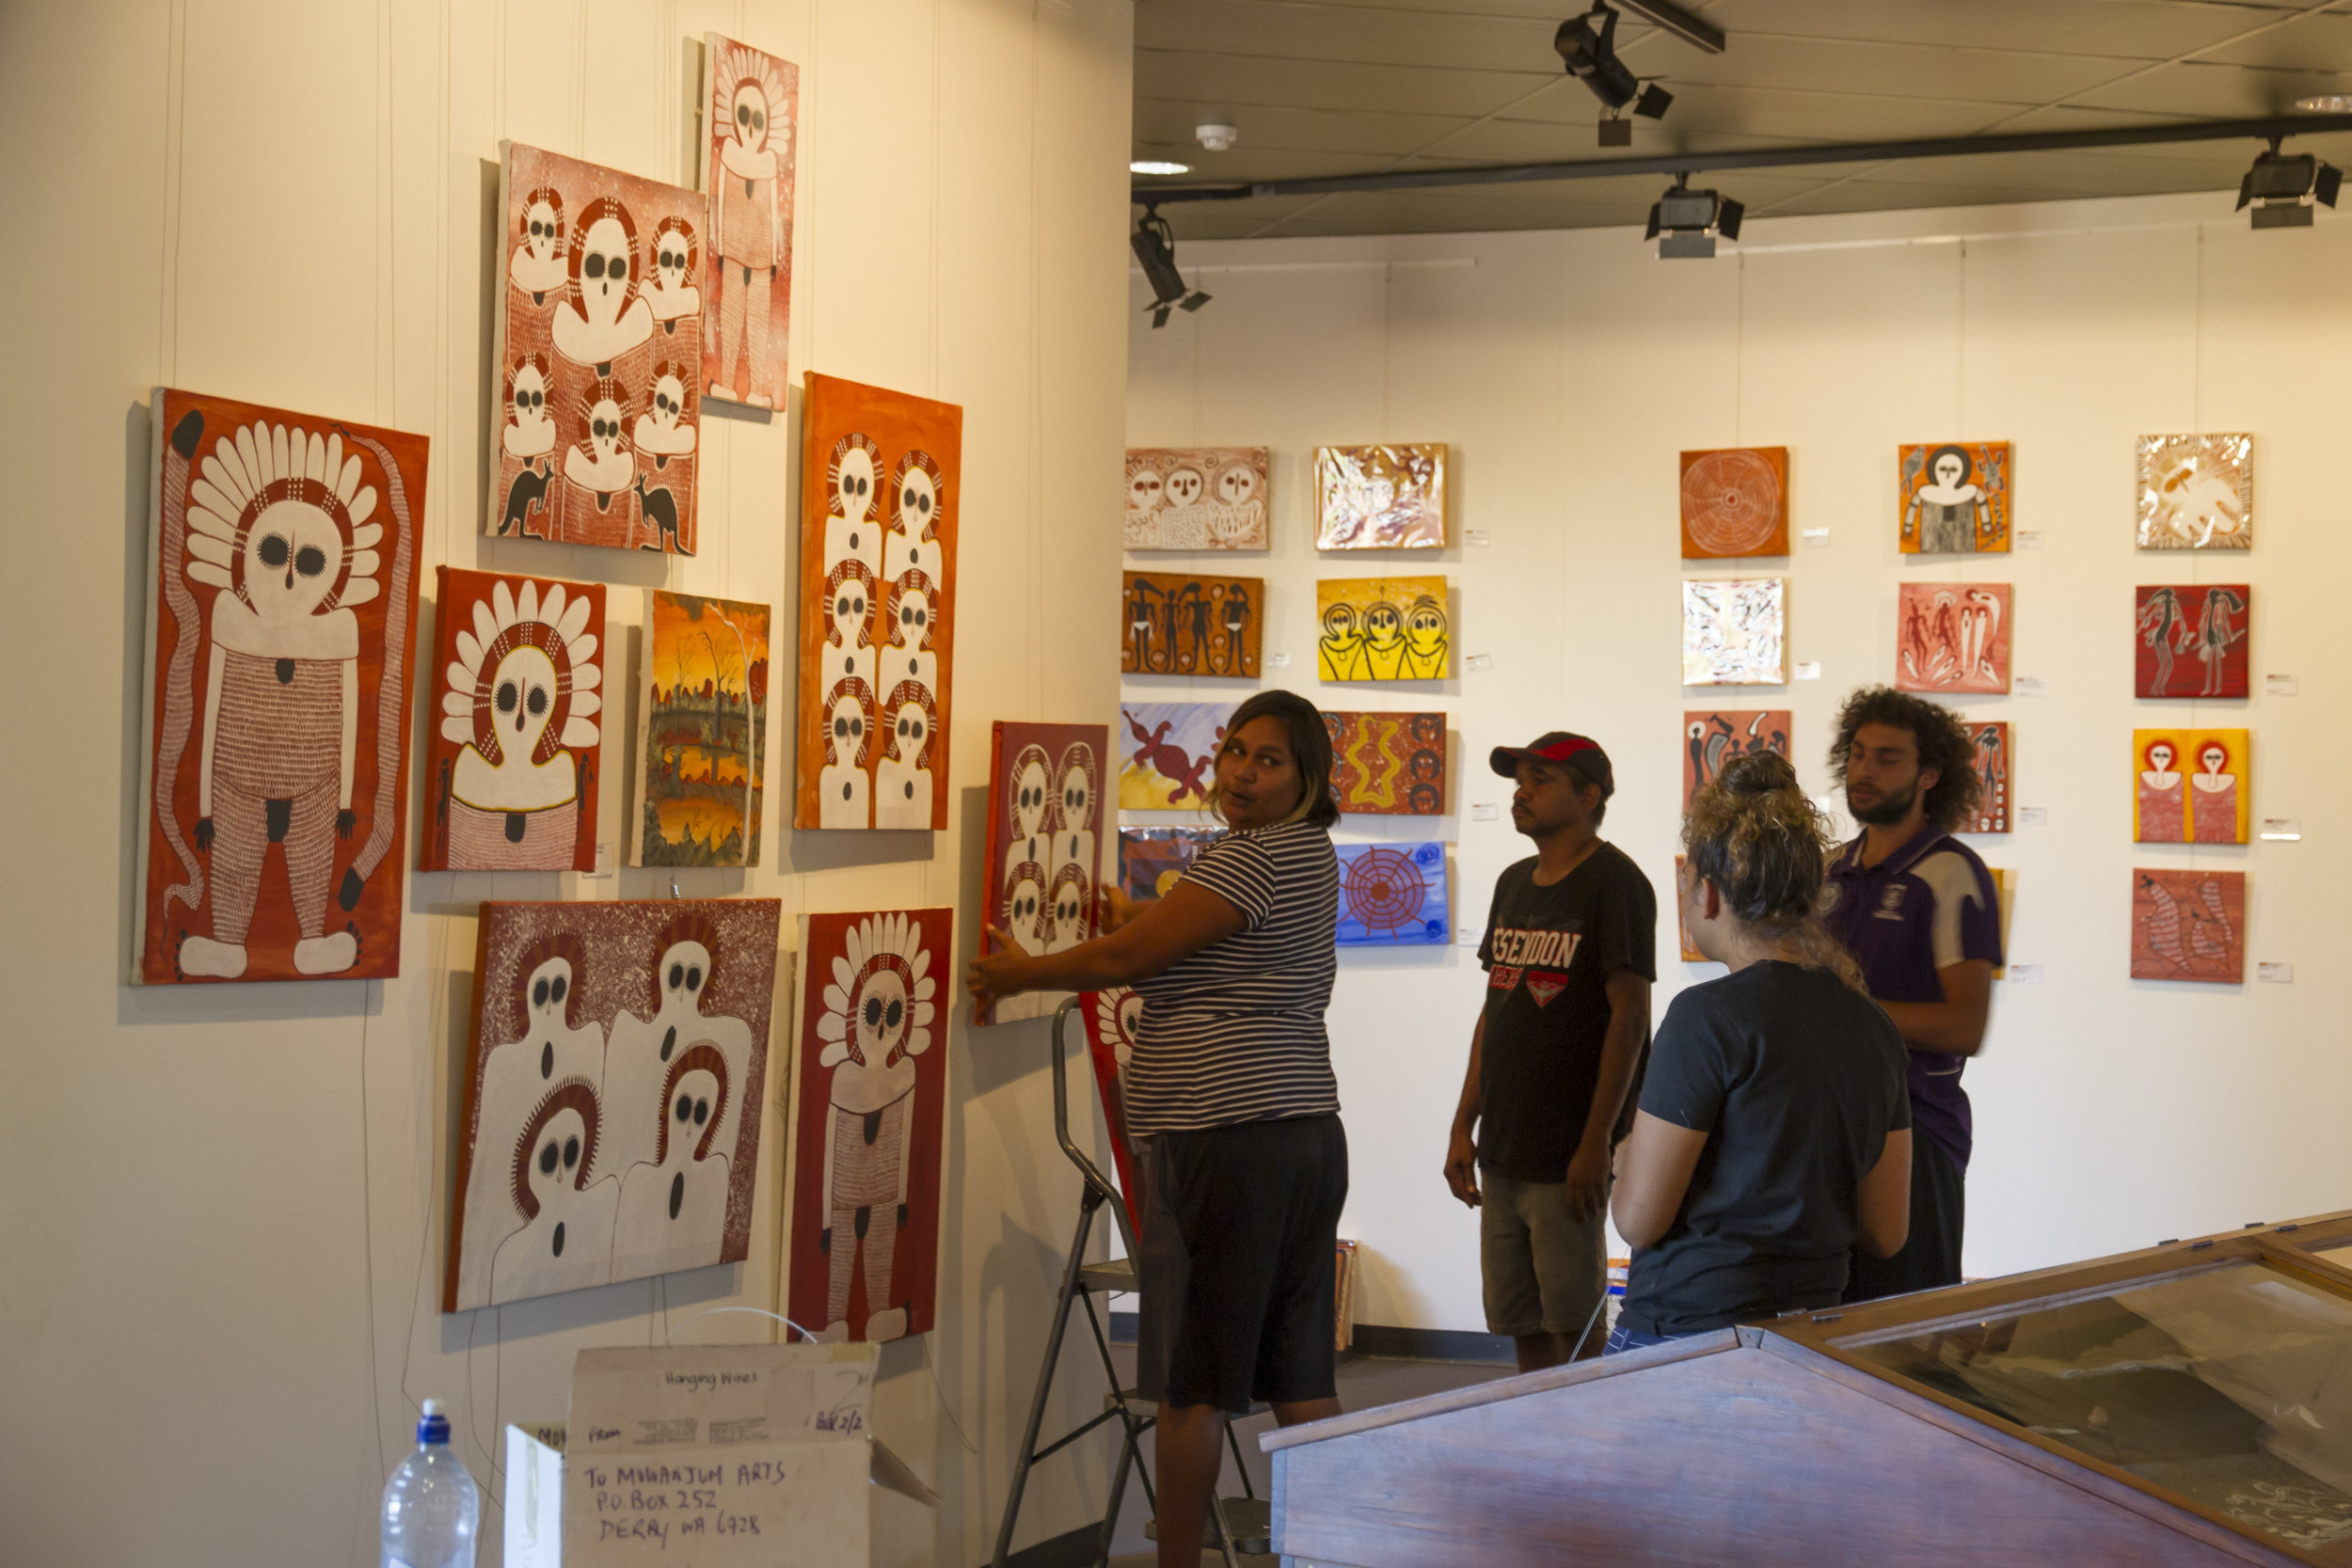 Sarah, Cissy, Stan and Dakota debating how many Wandjina's by Gordon Barunga can fit on one wall.